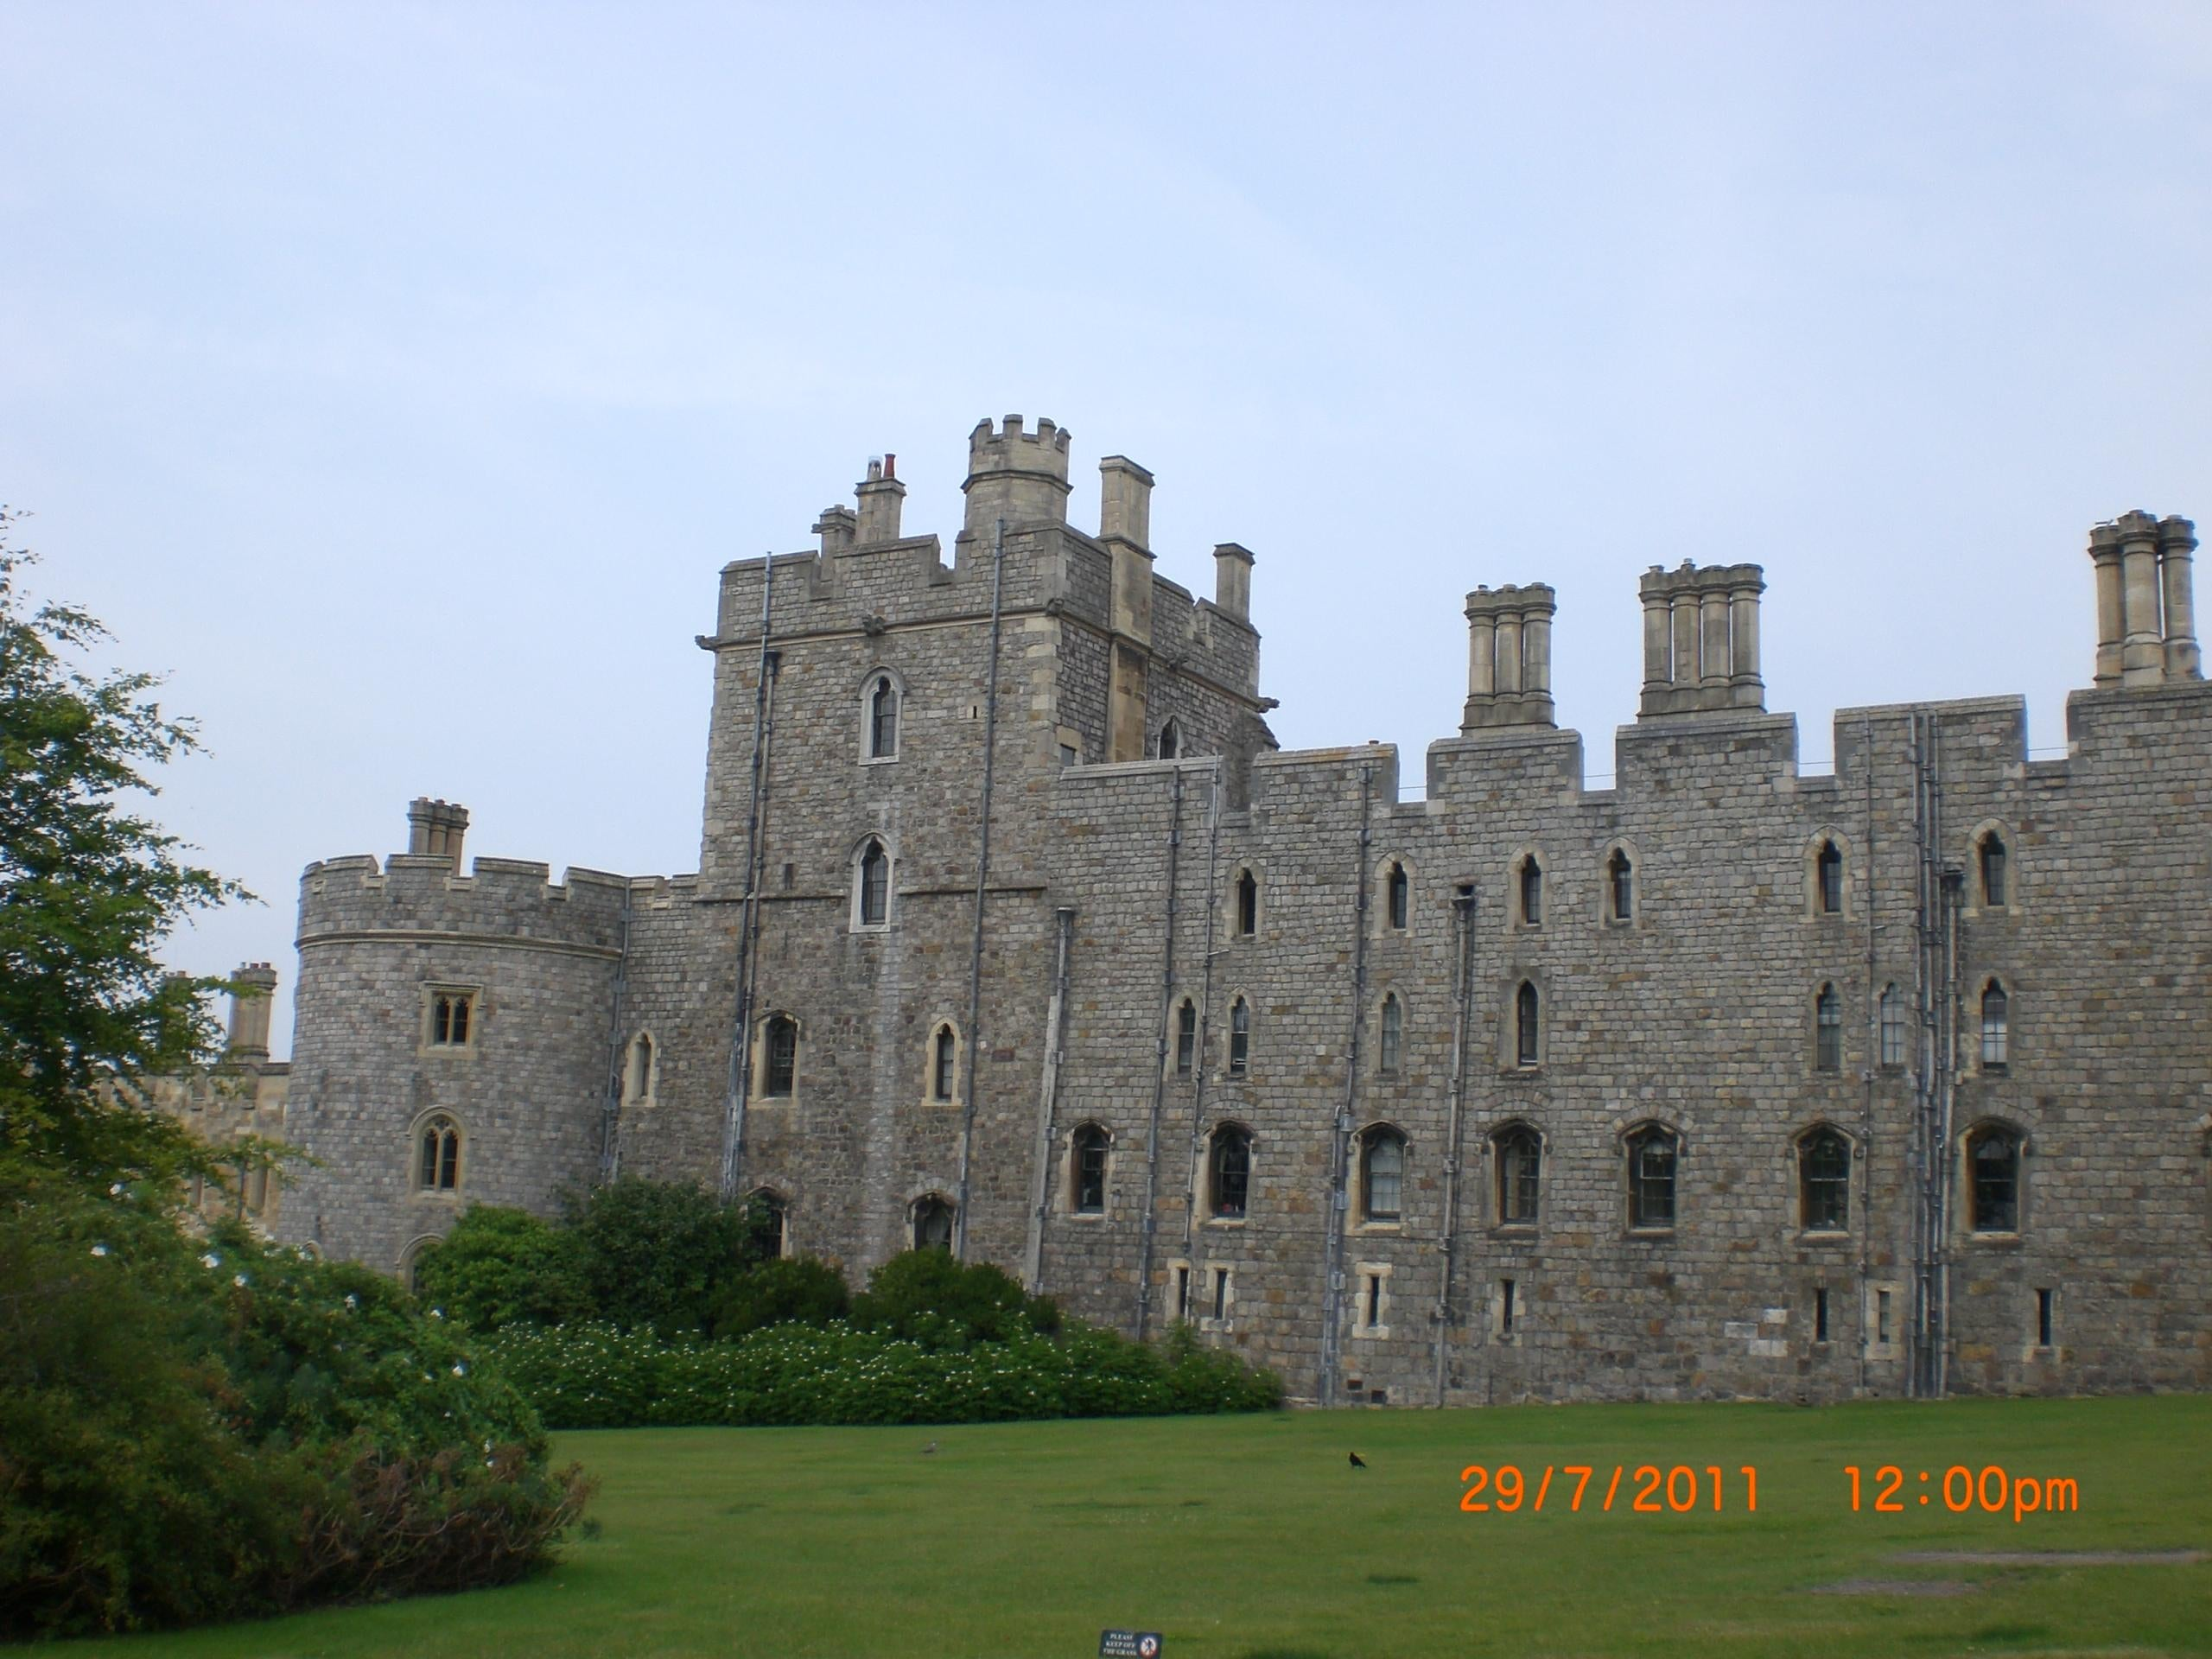 Césped en Castillo de Windsor